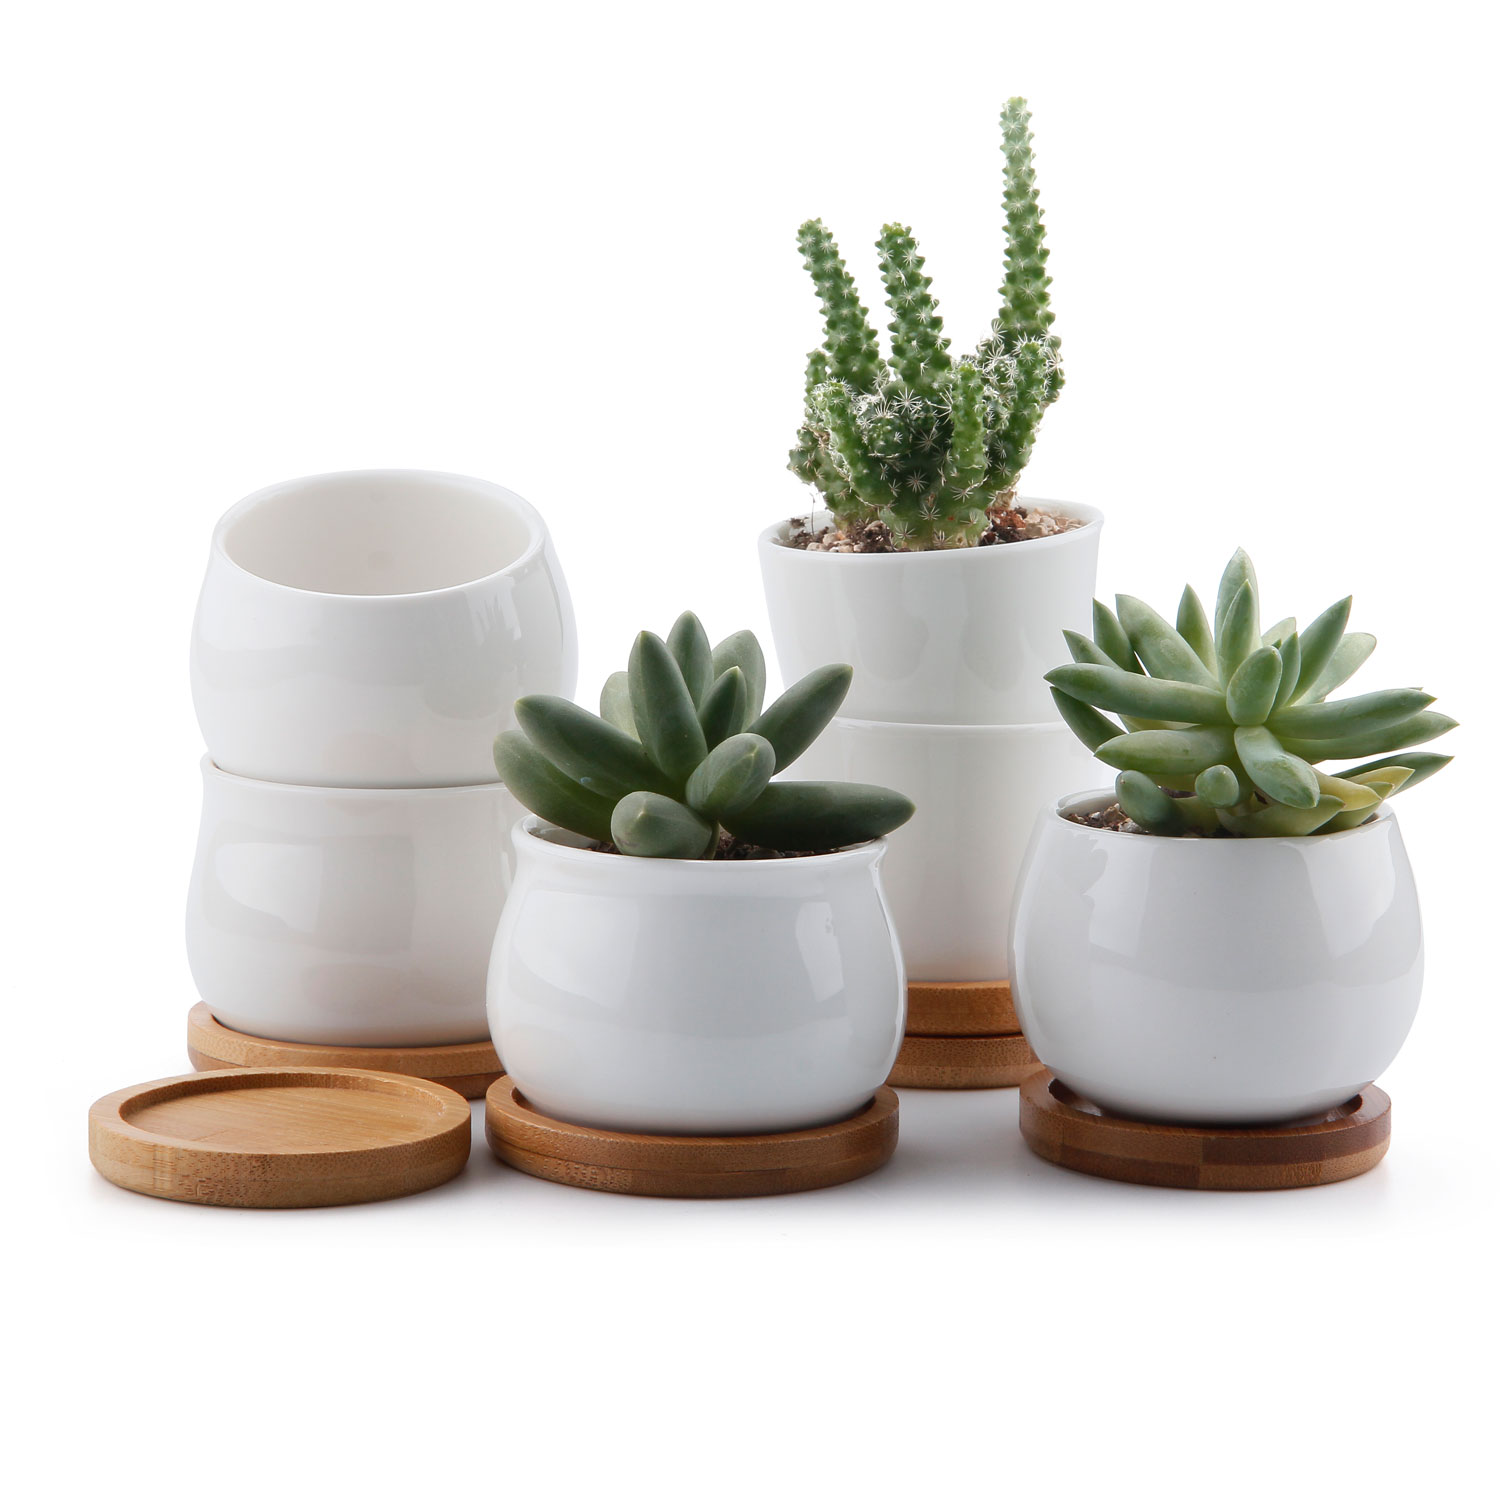 225 & Details about 6x Ceramic White Collection Succulent Cactus Plant Flower Pot with Bamboo Trays